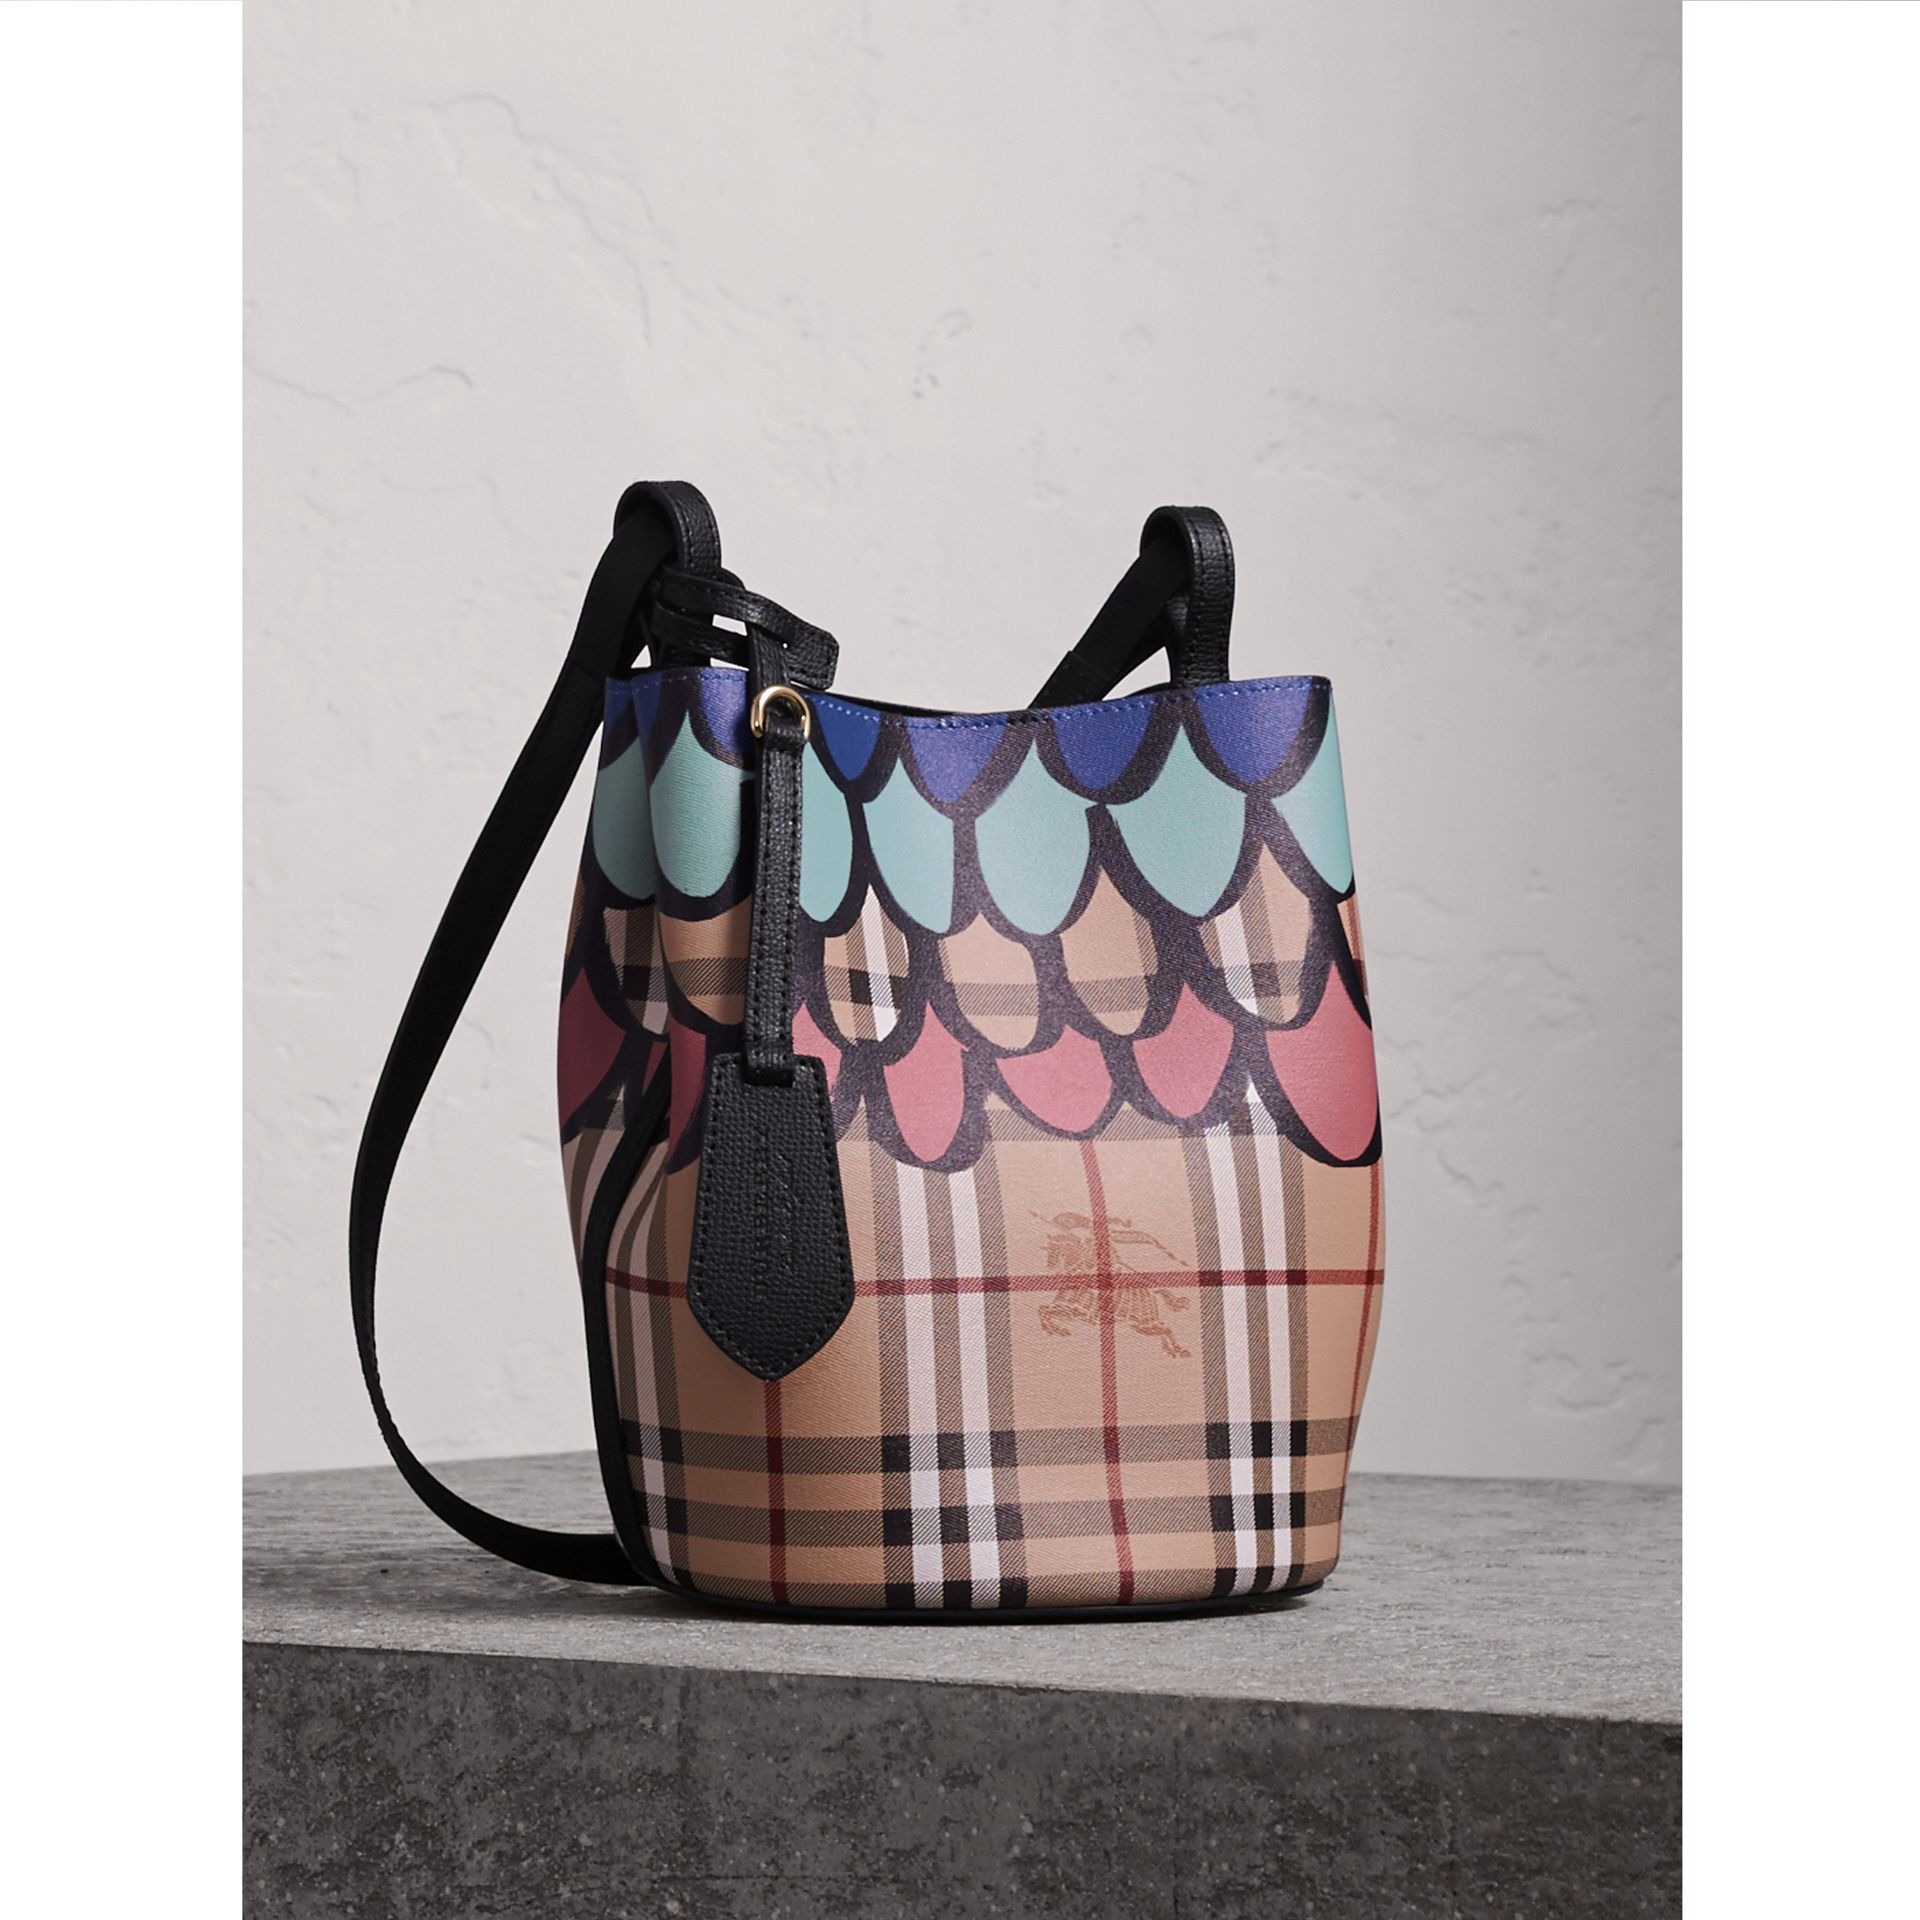 Trompe L'oeil Print Crossbody Bucket Bag in Black - Women | Burberry Singapore - gallery image 1